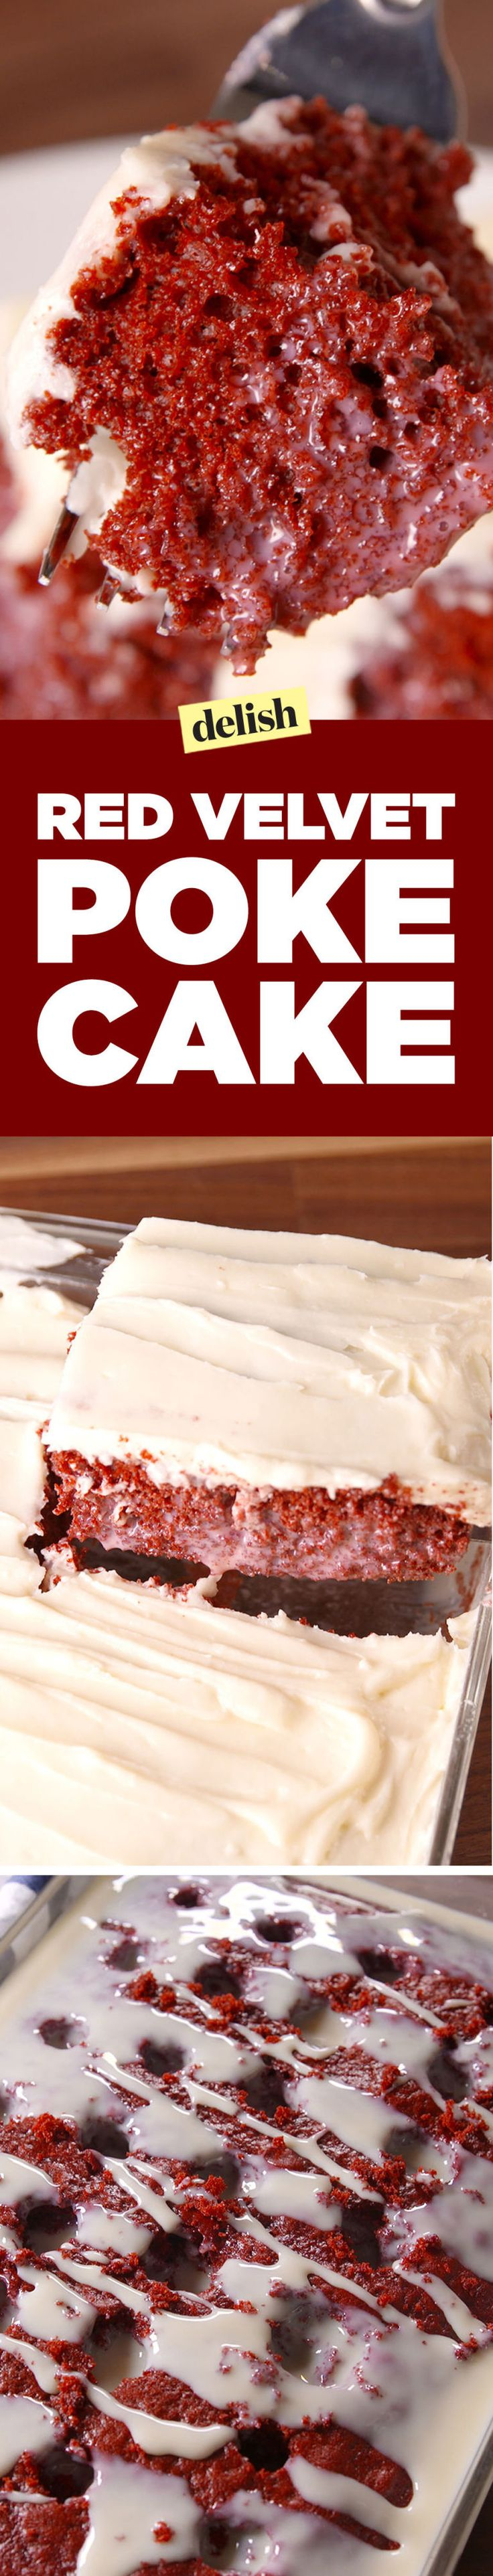 ​This Poke Cake Is The Ultimate In Red Velvet Desserts  - Delish.com